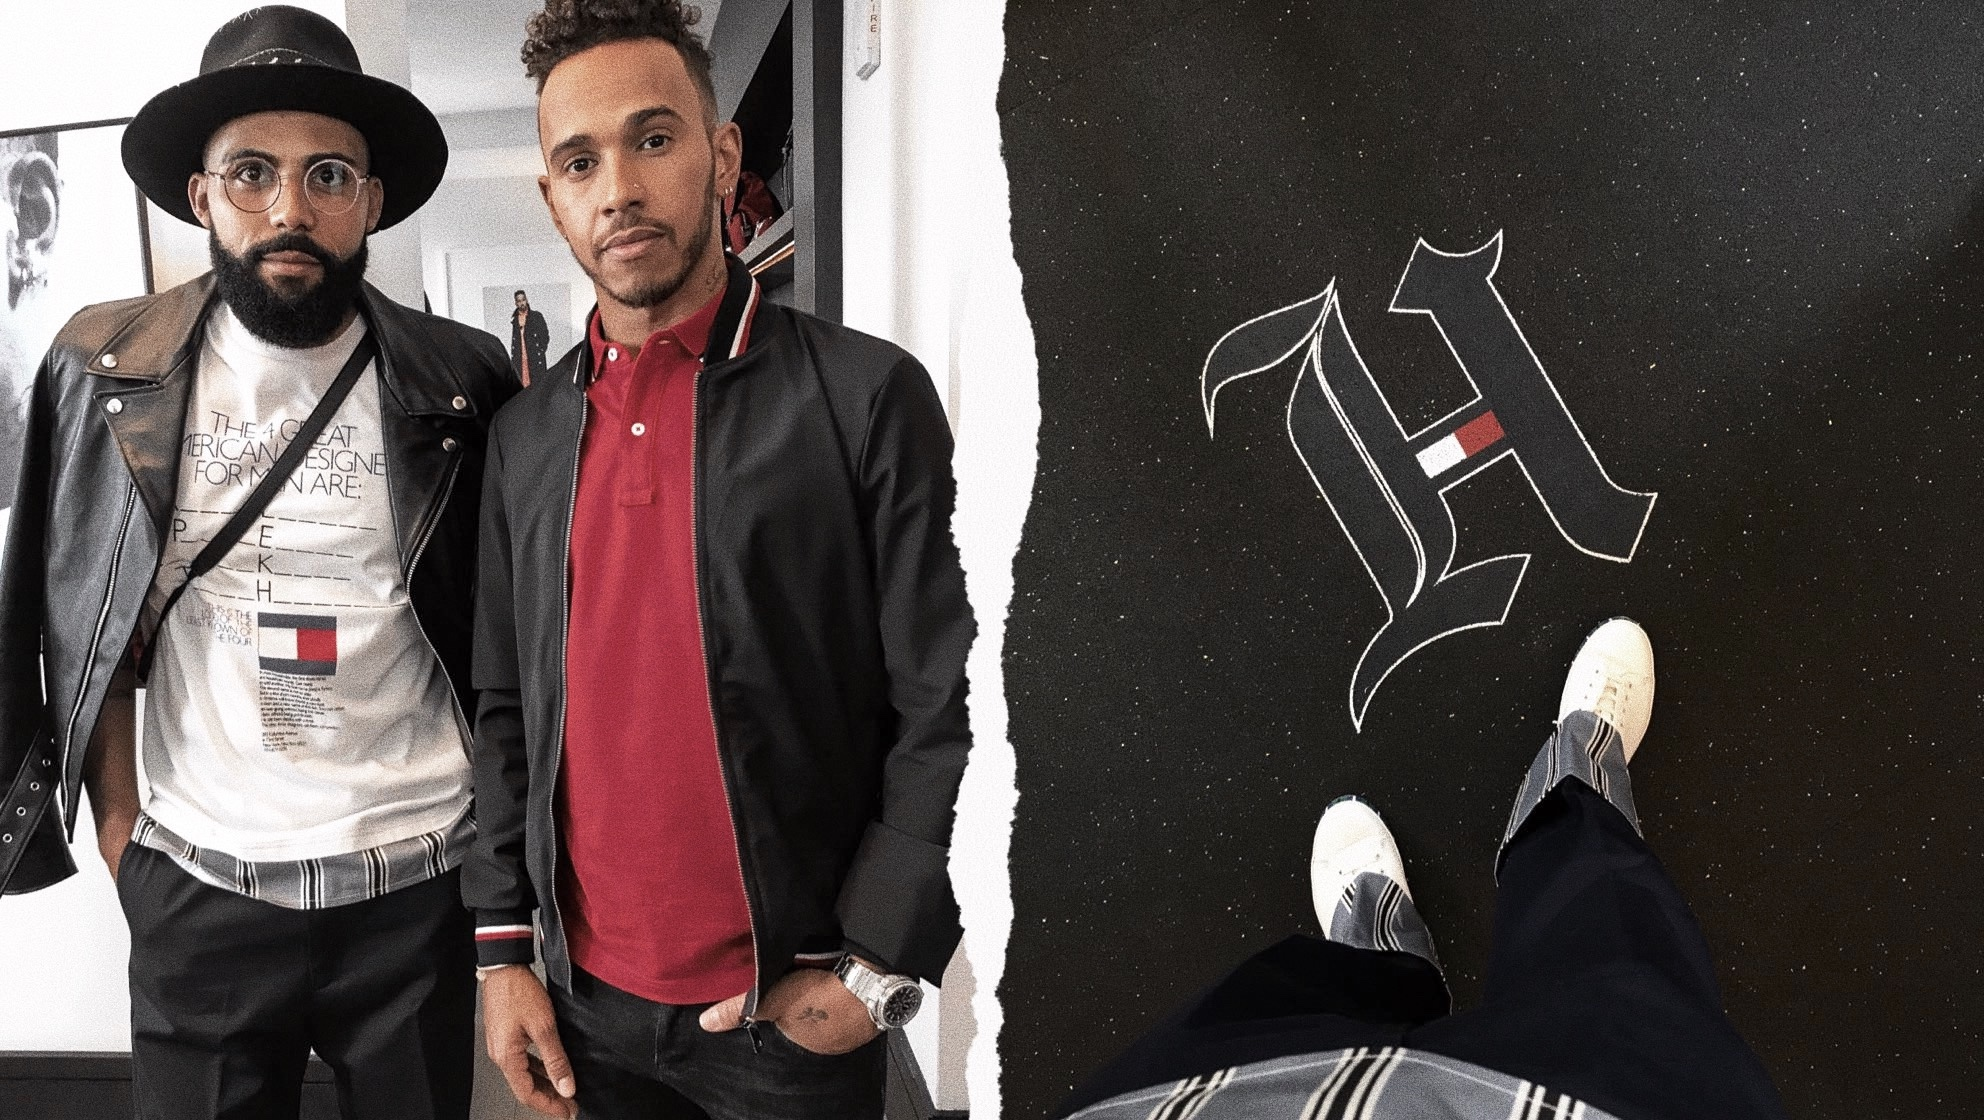 Jean-Claude Mpassy from New Kiss on the Blog with Lewis Hamilton during the Tommy Hilfiger X Lewis collection presentation